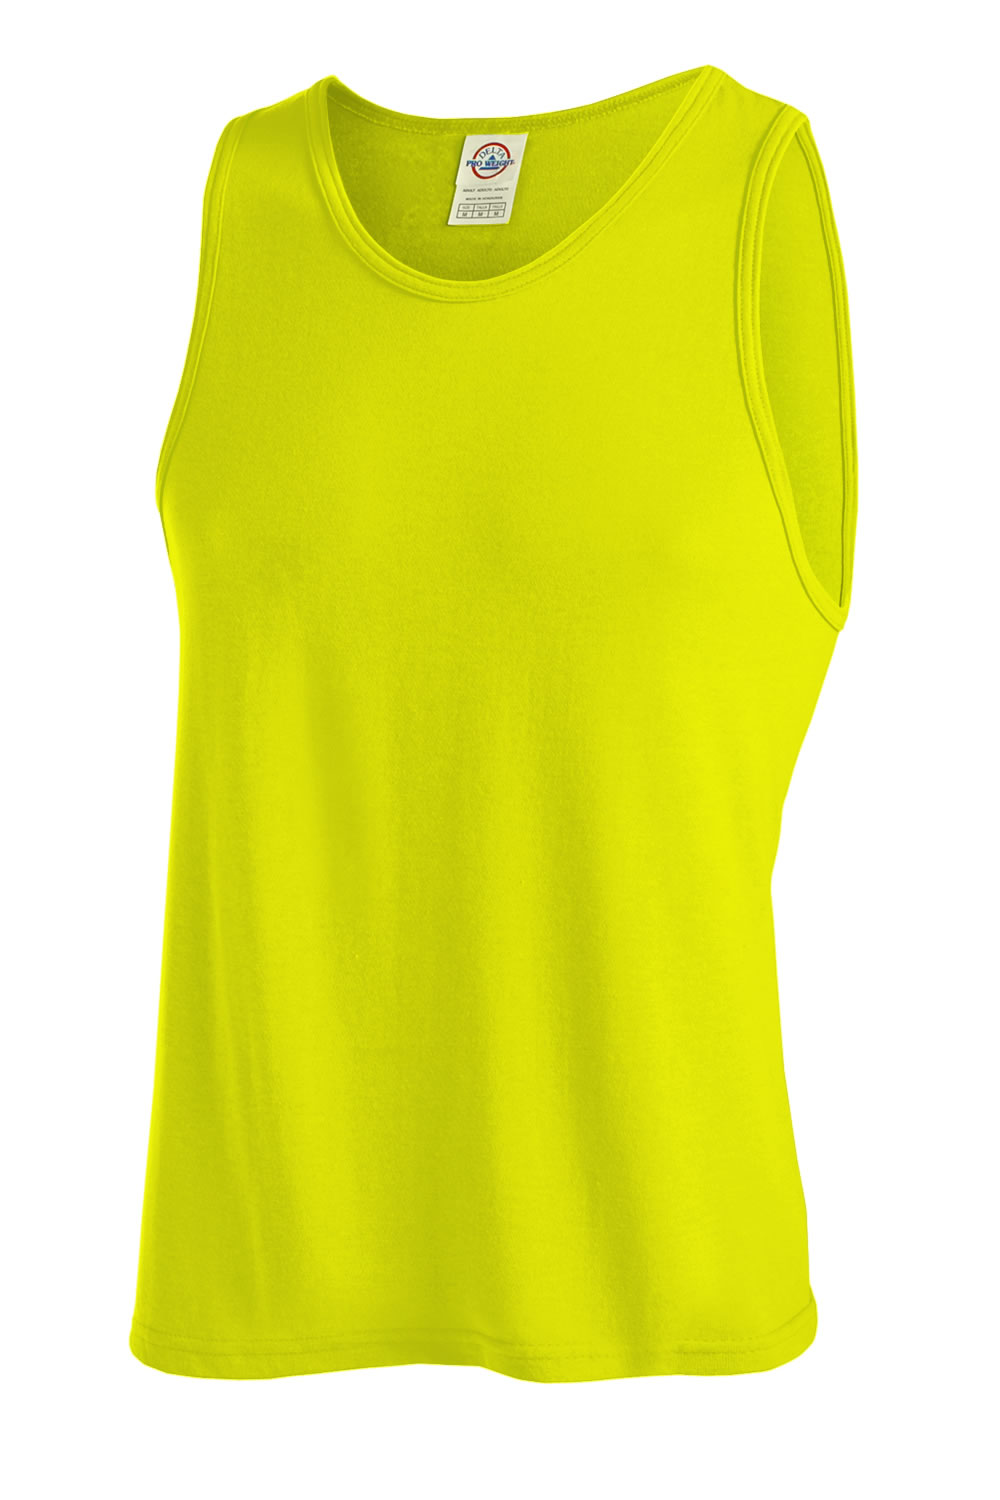 Safety Green Tank Tops Tank Top Safety Green